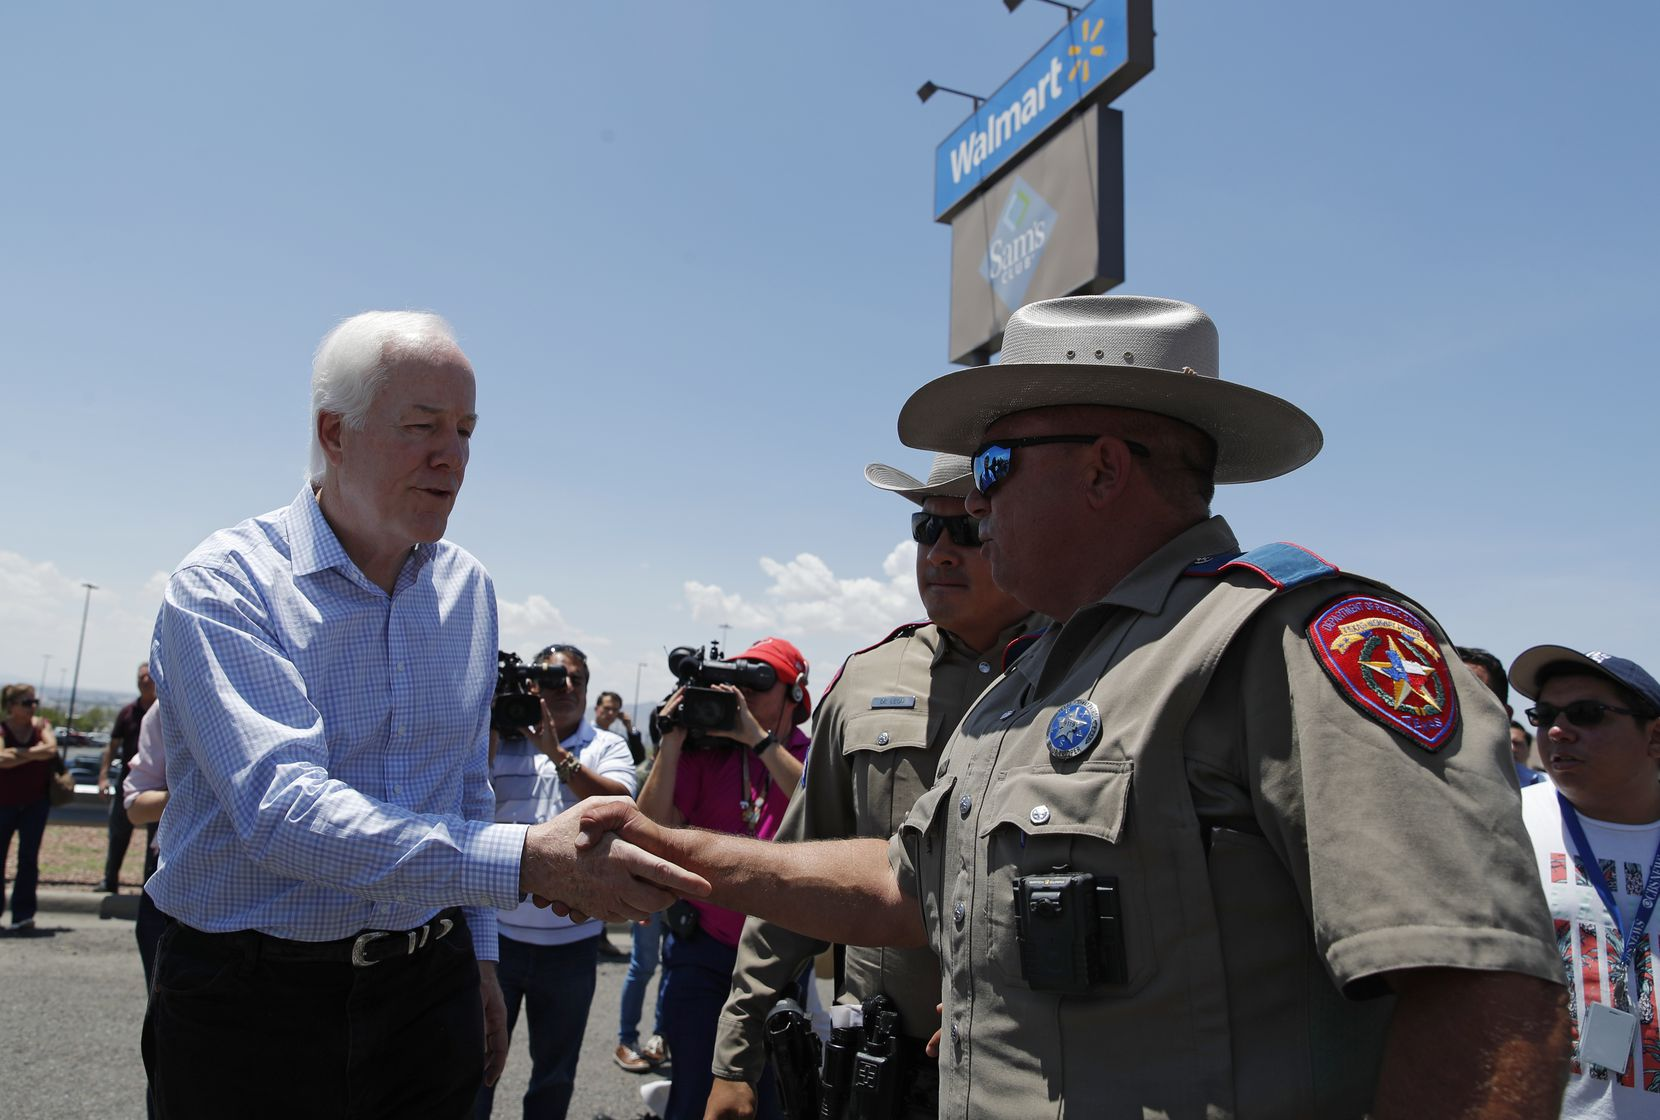 Sen. John Cornyn, R-Texas., left, shakes hands with law enforcement at the scene of a mass shooting at a shopping complex Sunday, Aug. 4, 2019, in El Paso, Texas.